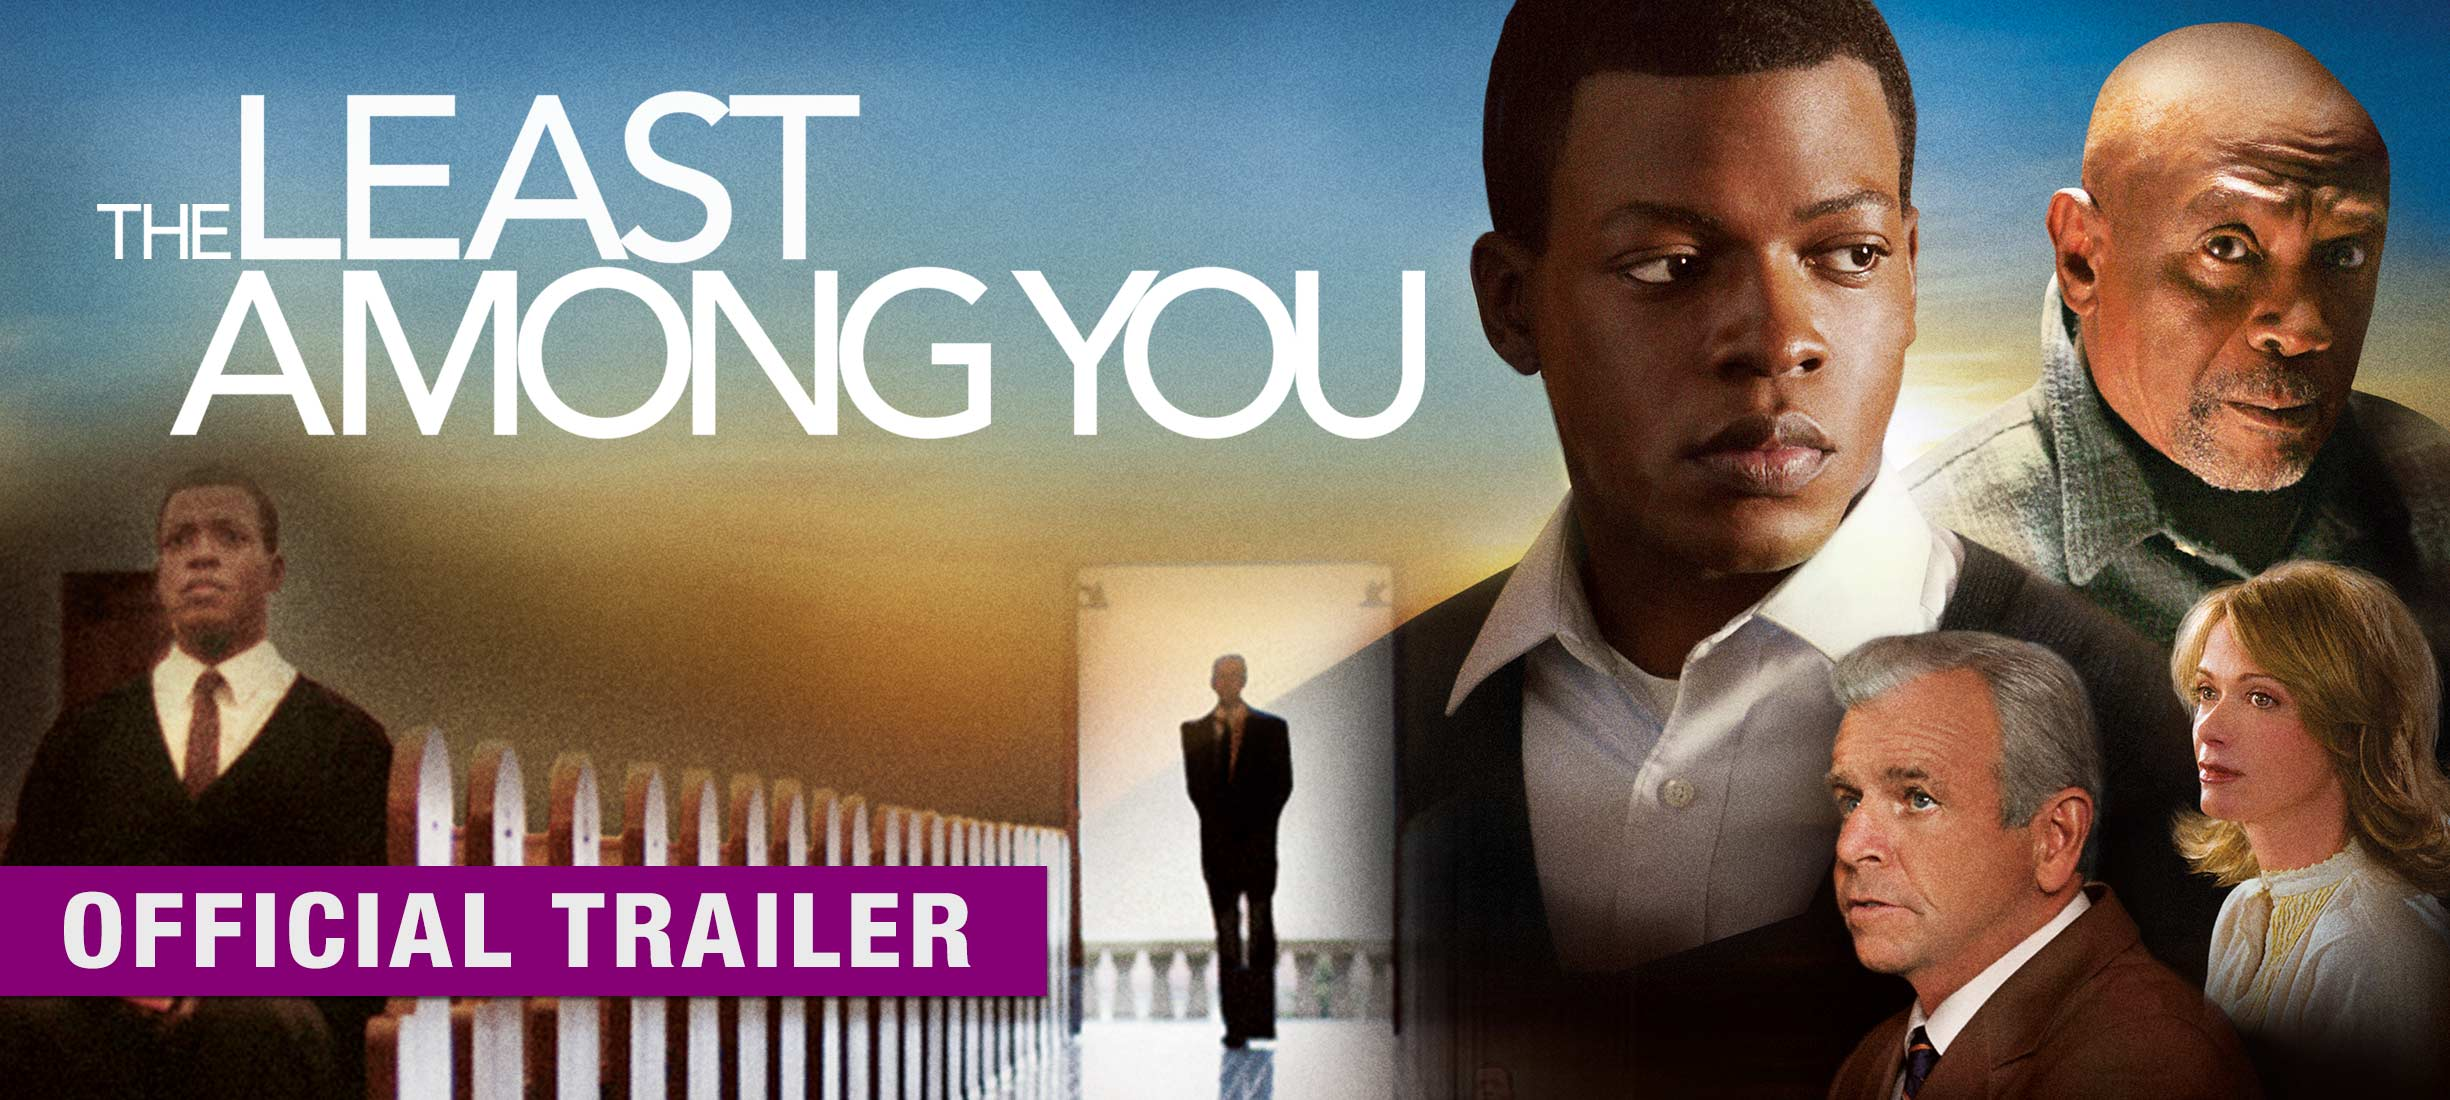 The Least Among You: Trailer